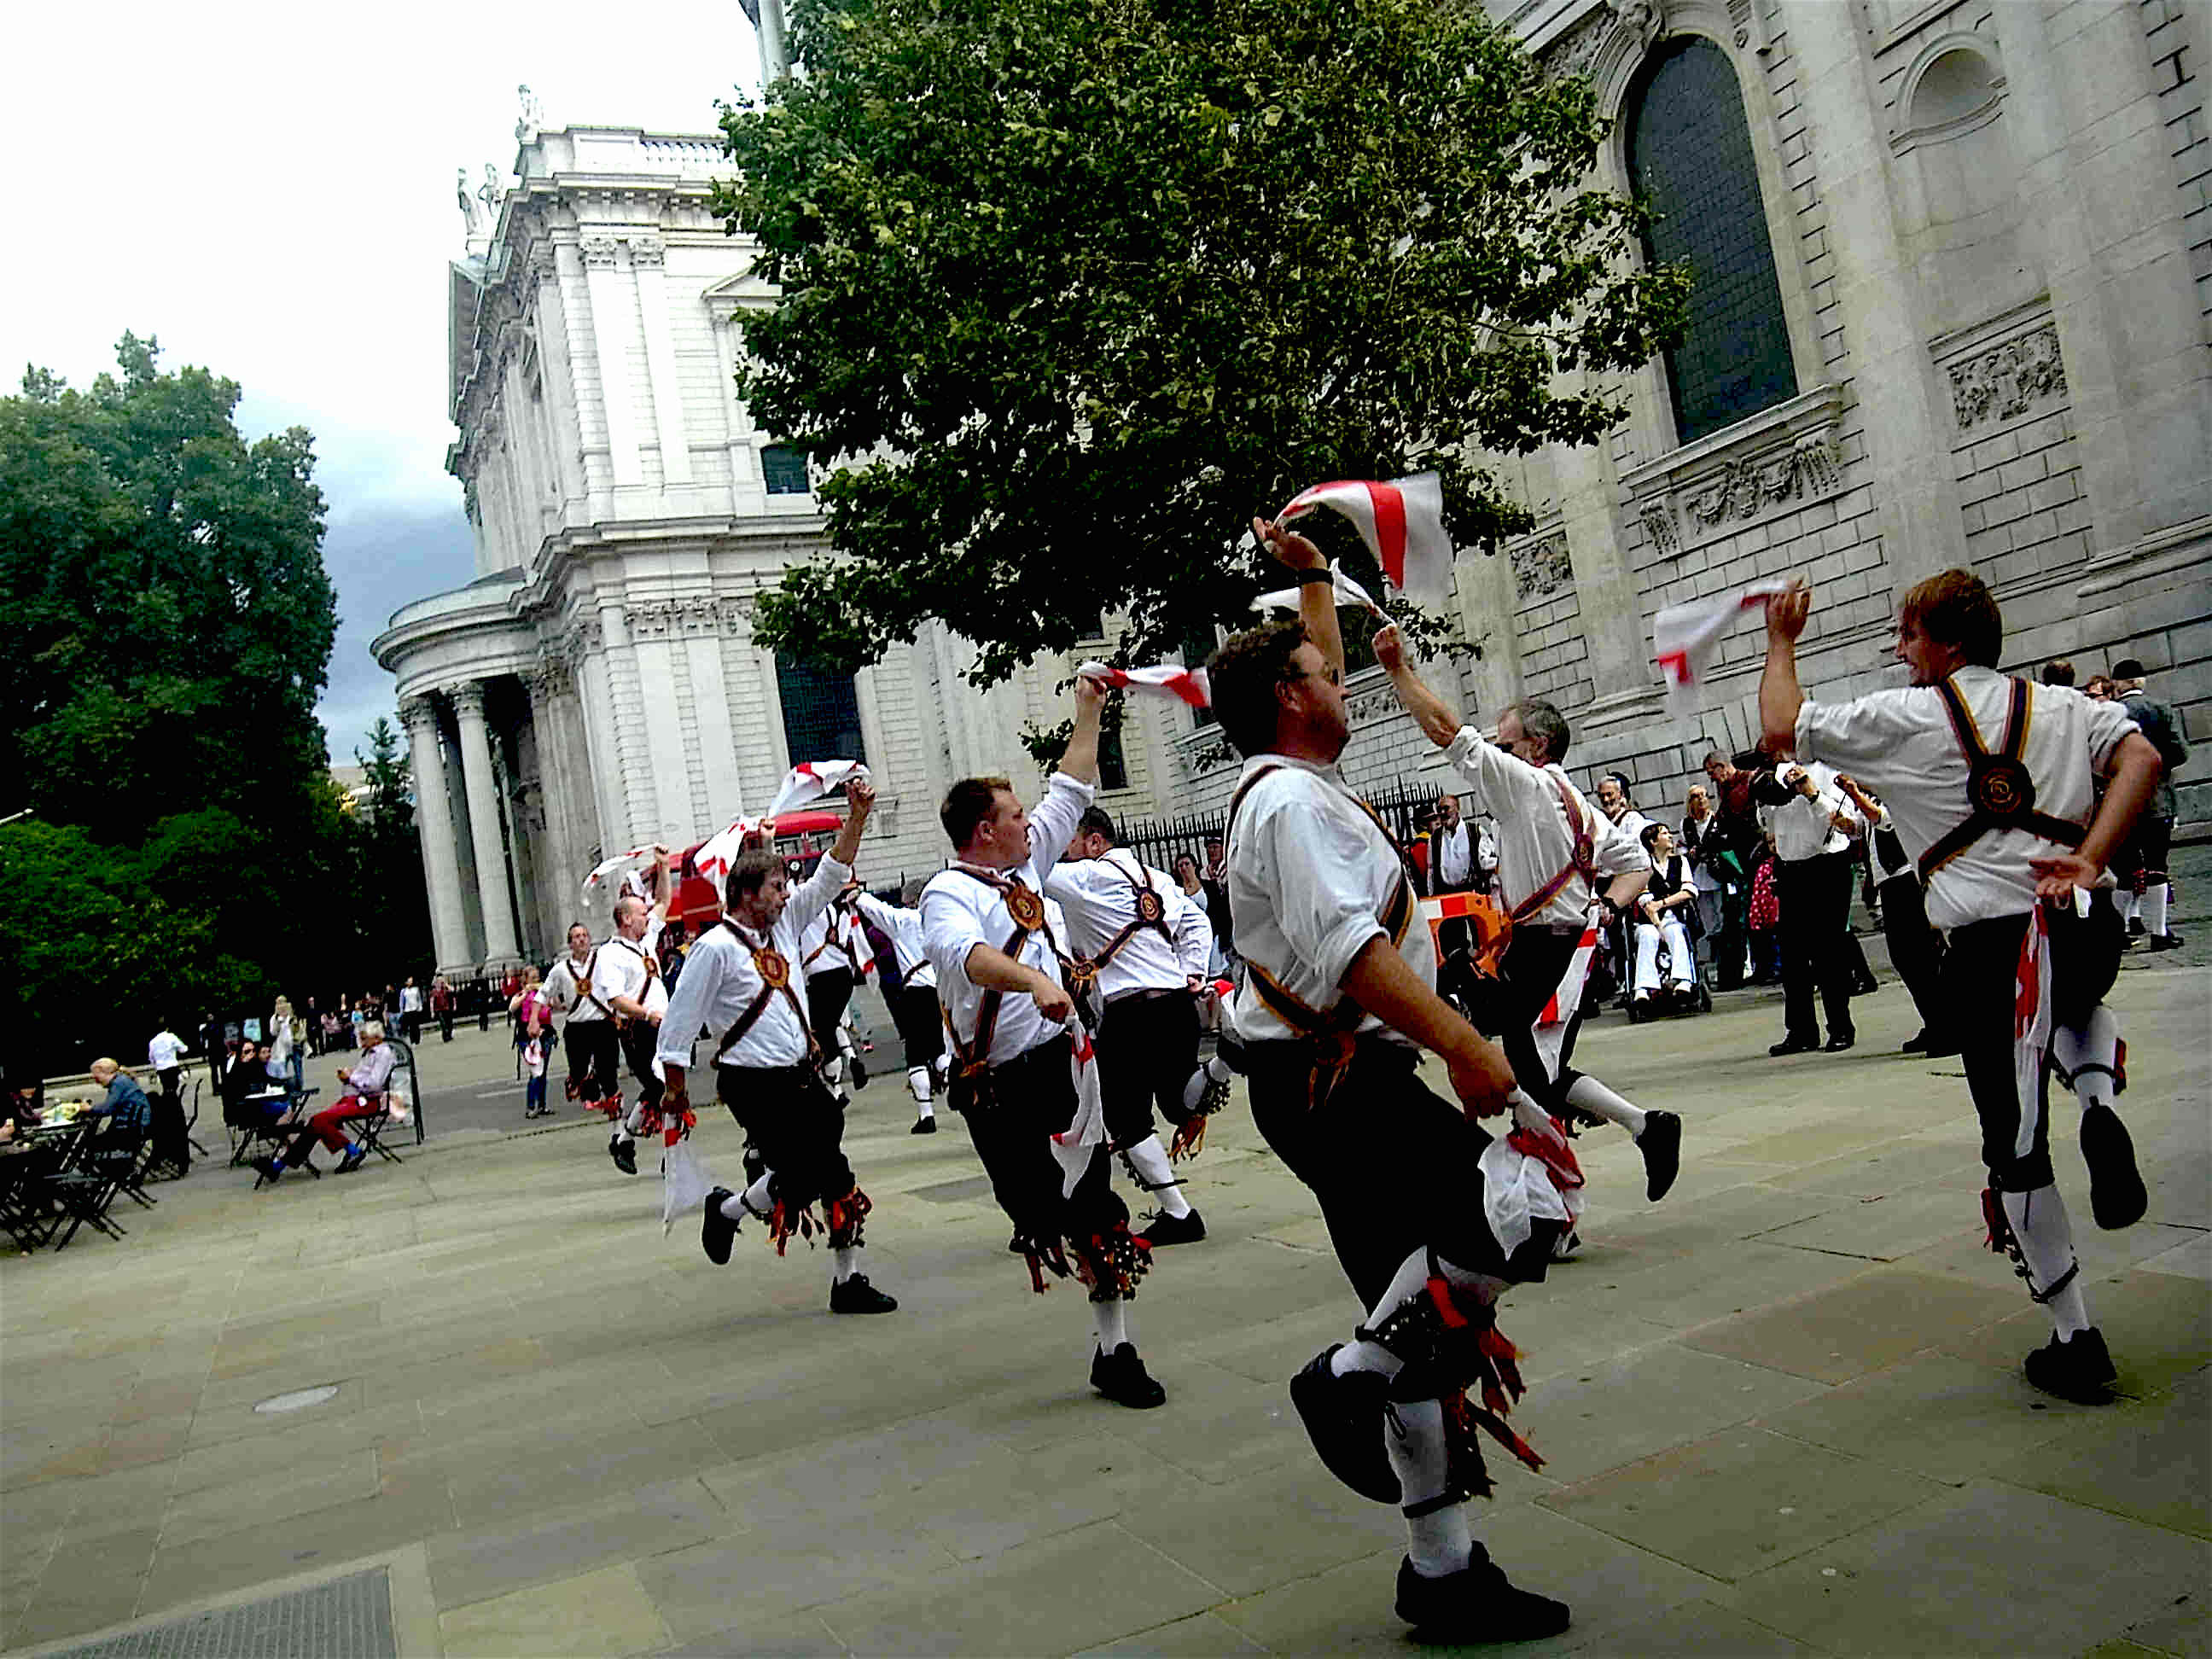 Morris dancing at St Paul's cathedral